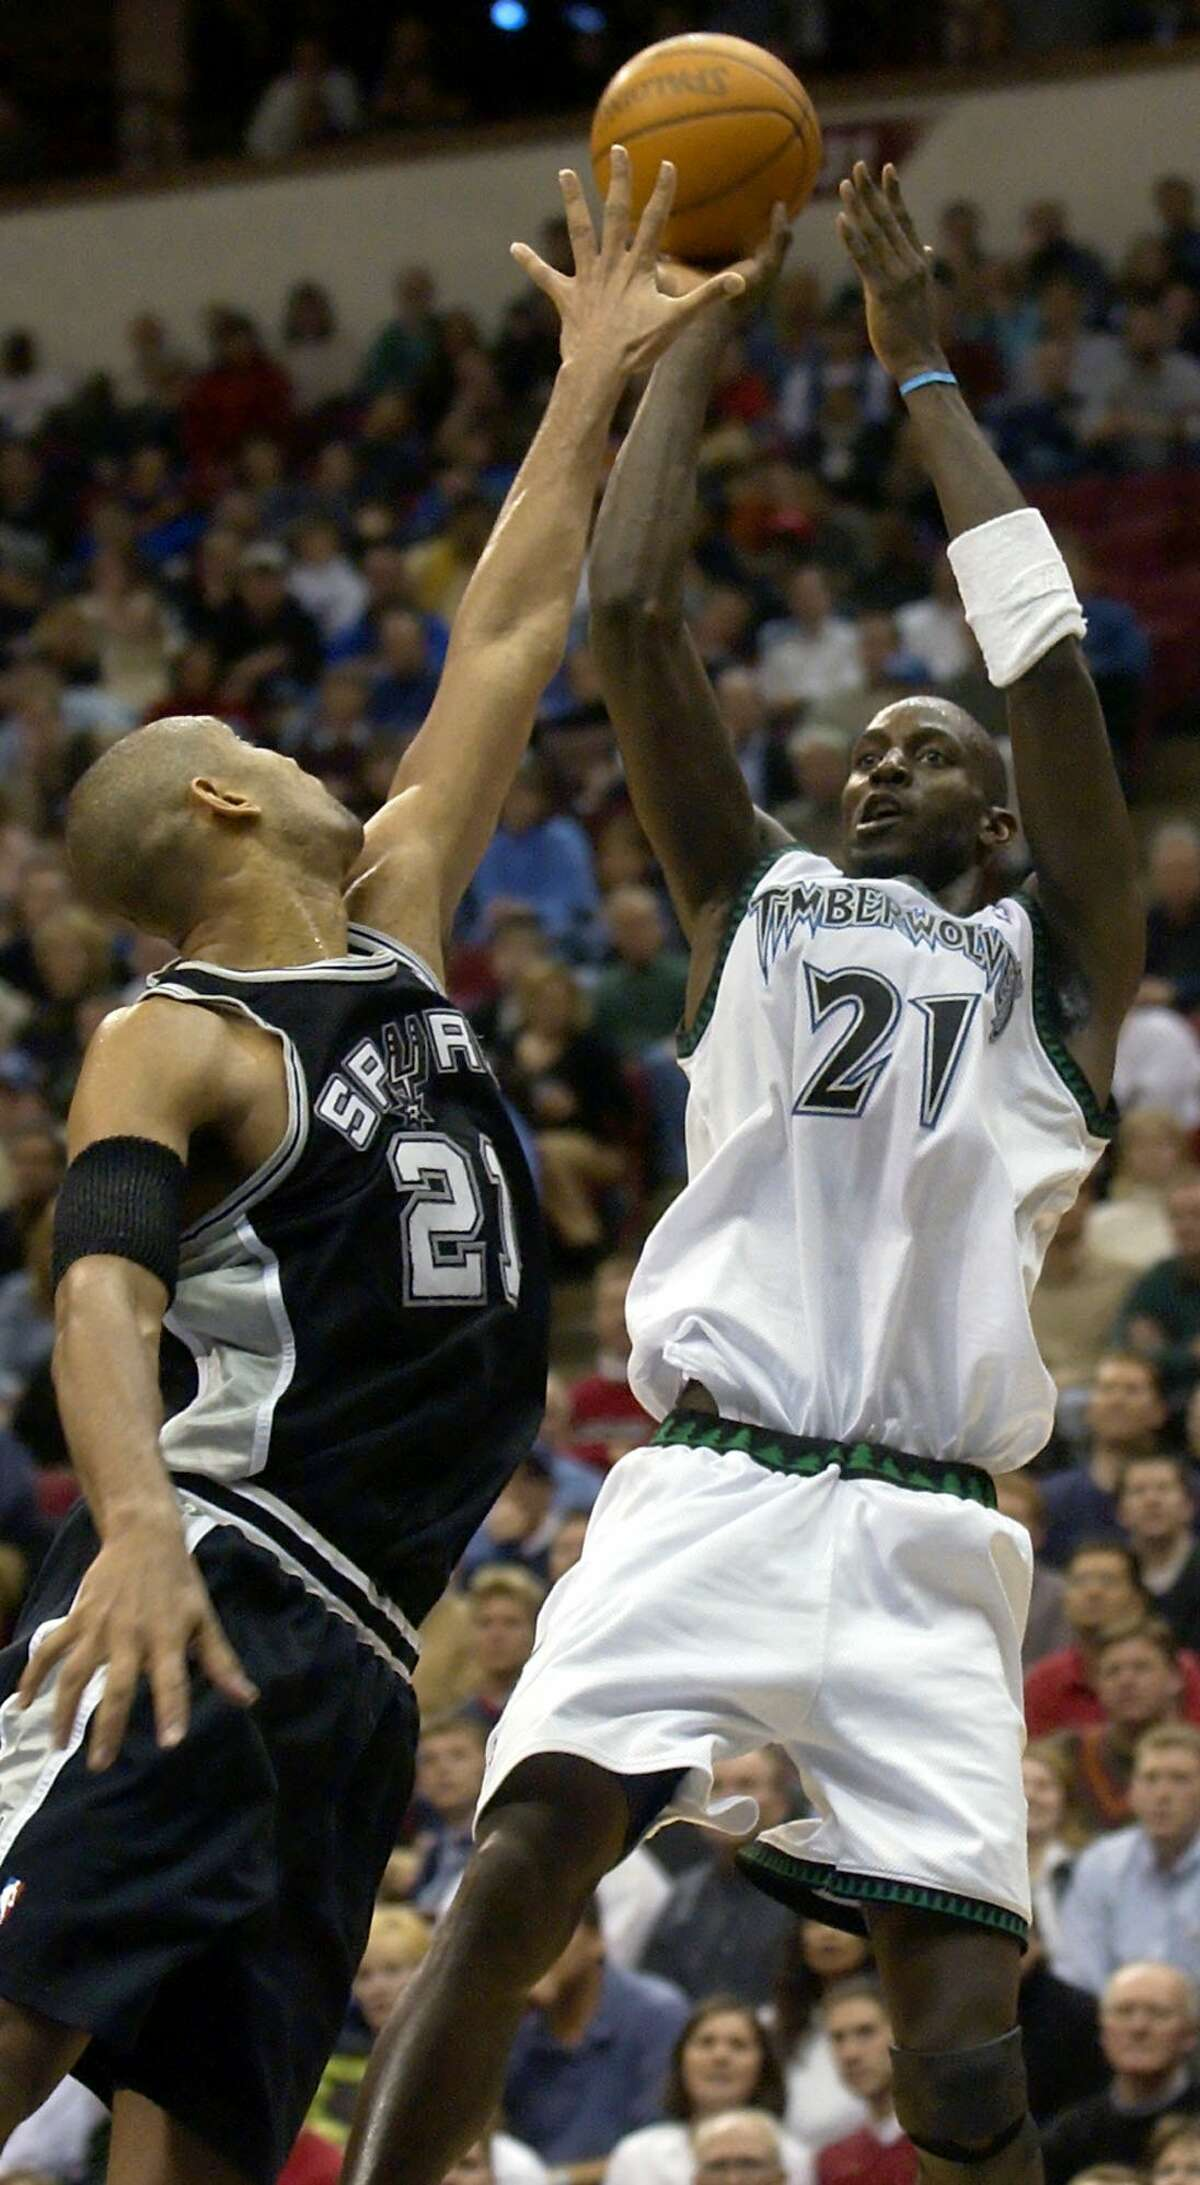 1. The first rodeo road trip began Jan. 27, 2003, against the Minnesota Timberwolves. The Spurs lost 95 to 106.